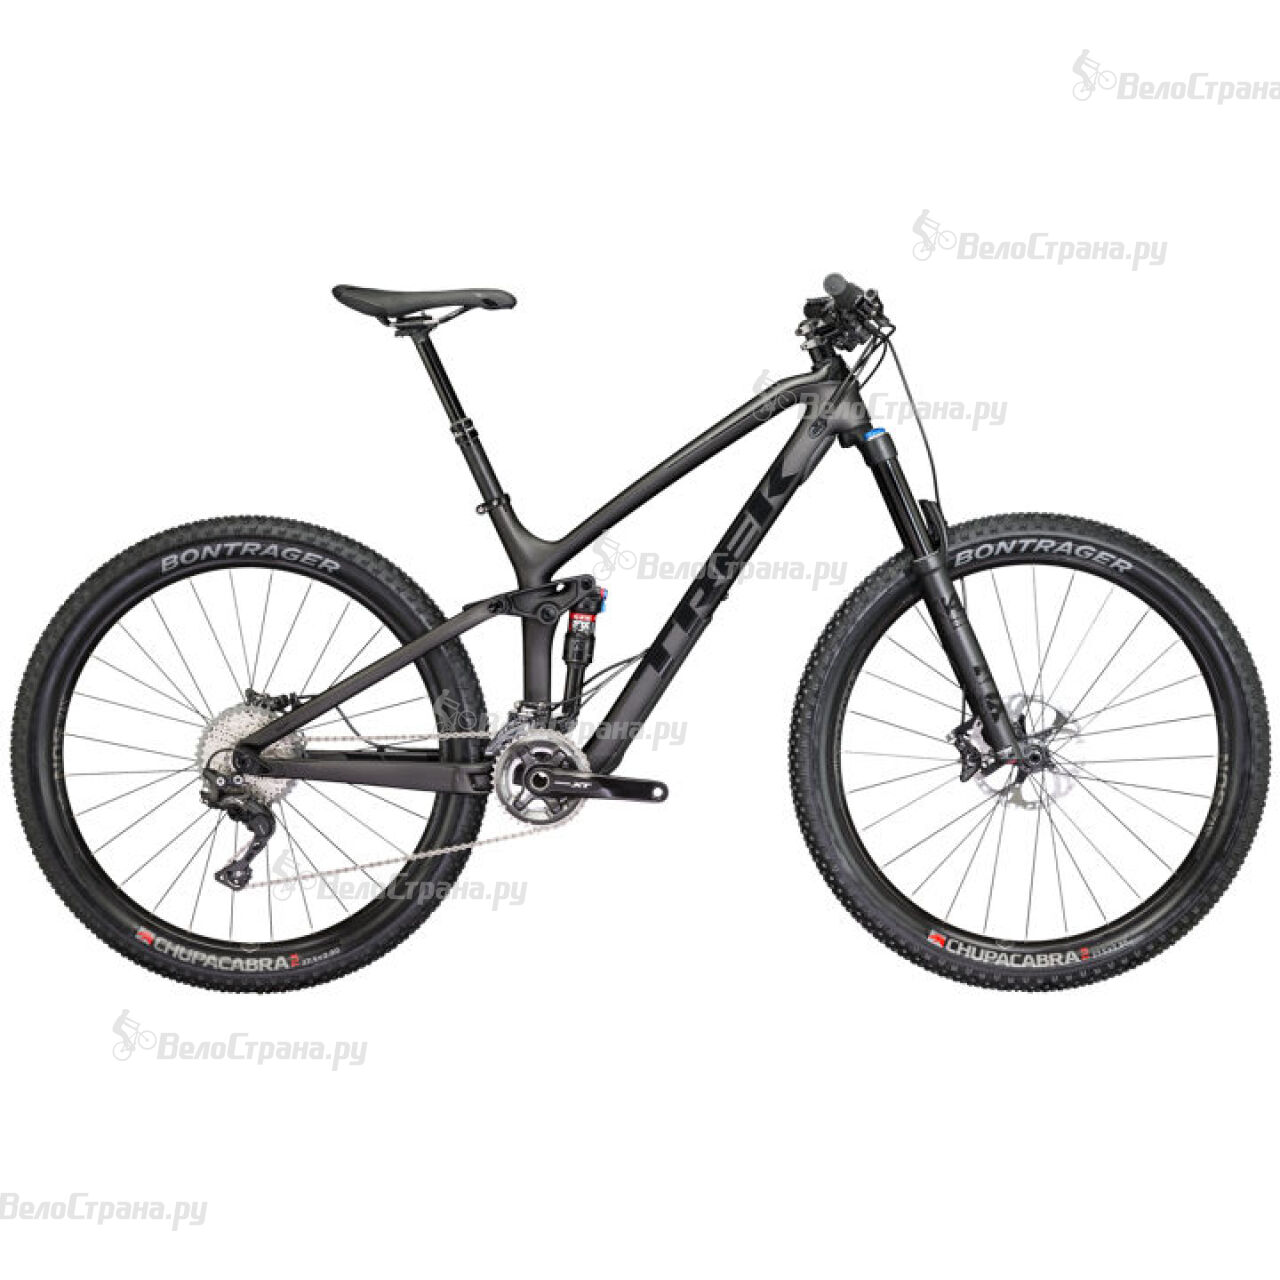 Велосипед Trek Fuel EX 9.8 27.5 PLUS (2017) велосипед trek fuel ex 9 29 2017